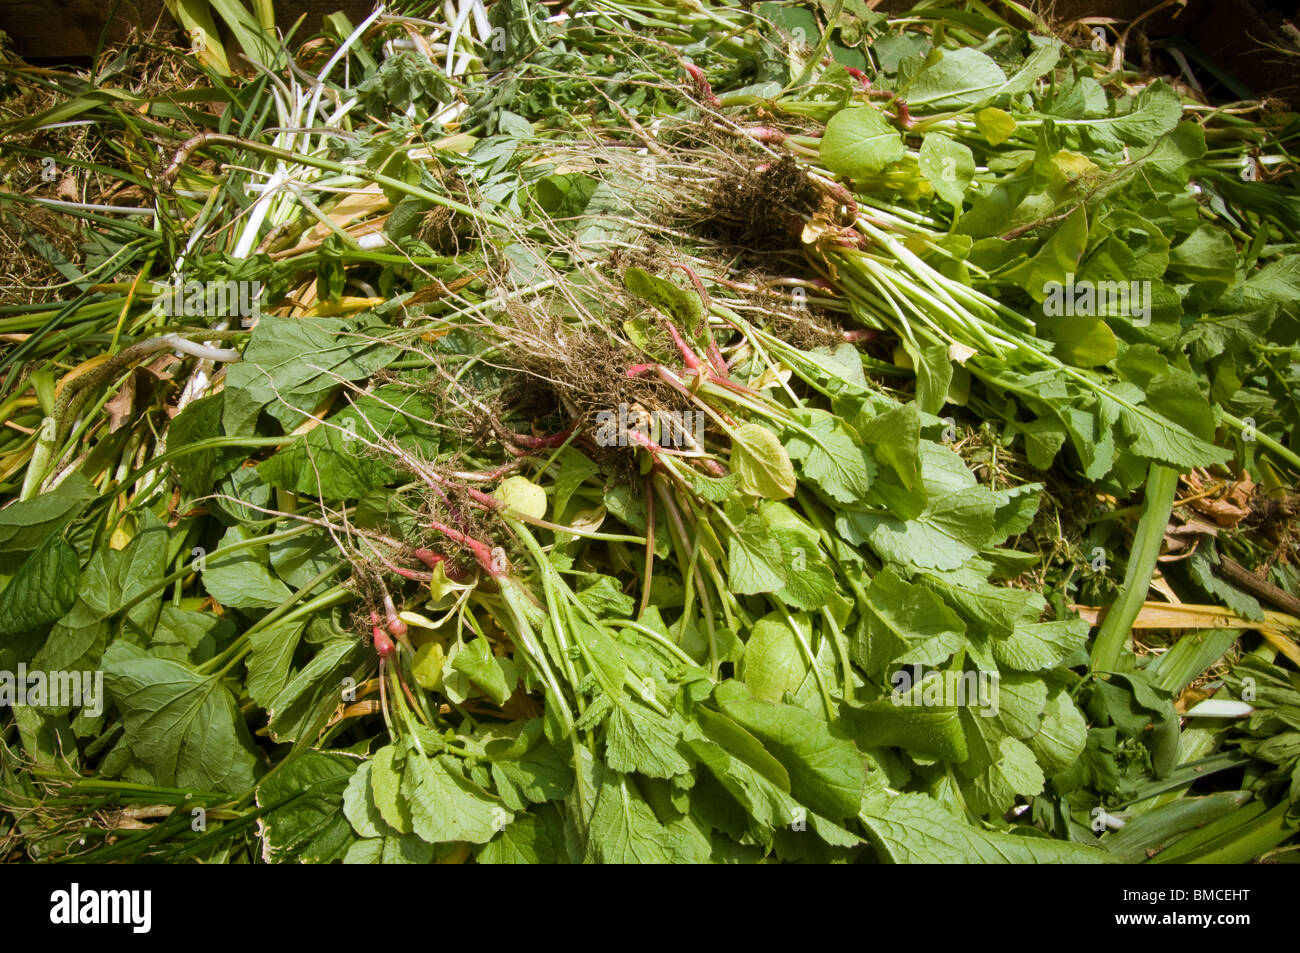 Radishes and other plants in a compost pile in a community garden in New York on Saturday, May 29, 2010. (© - Stock Image